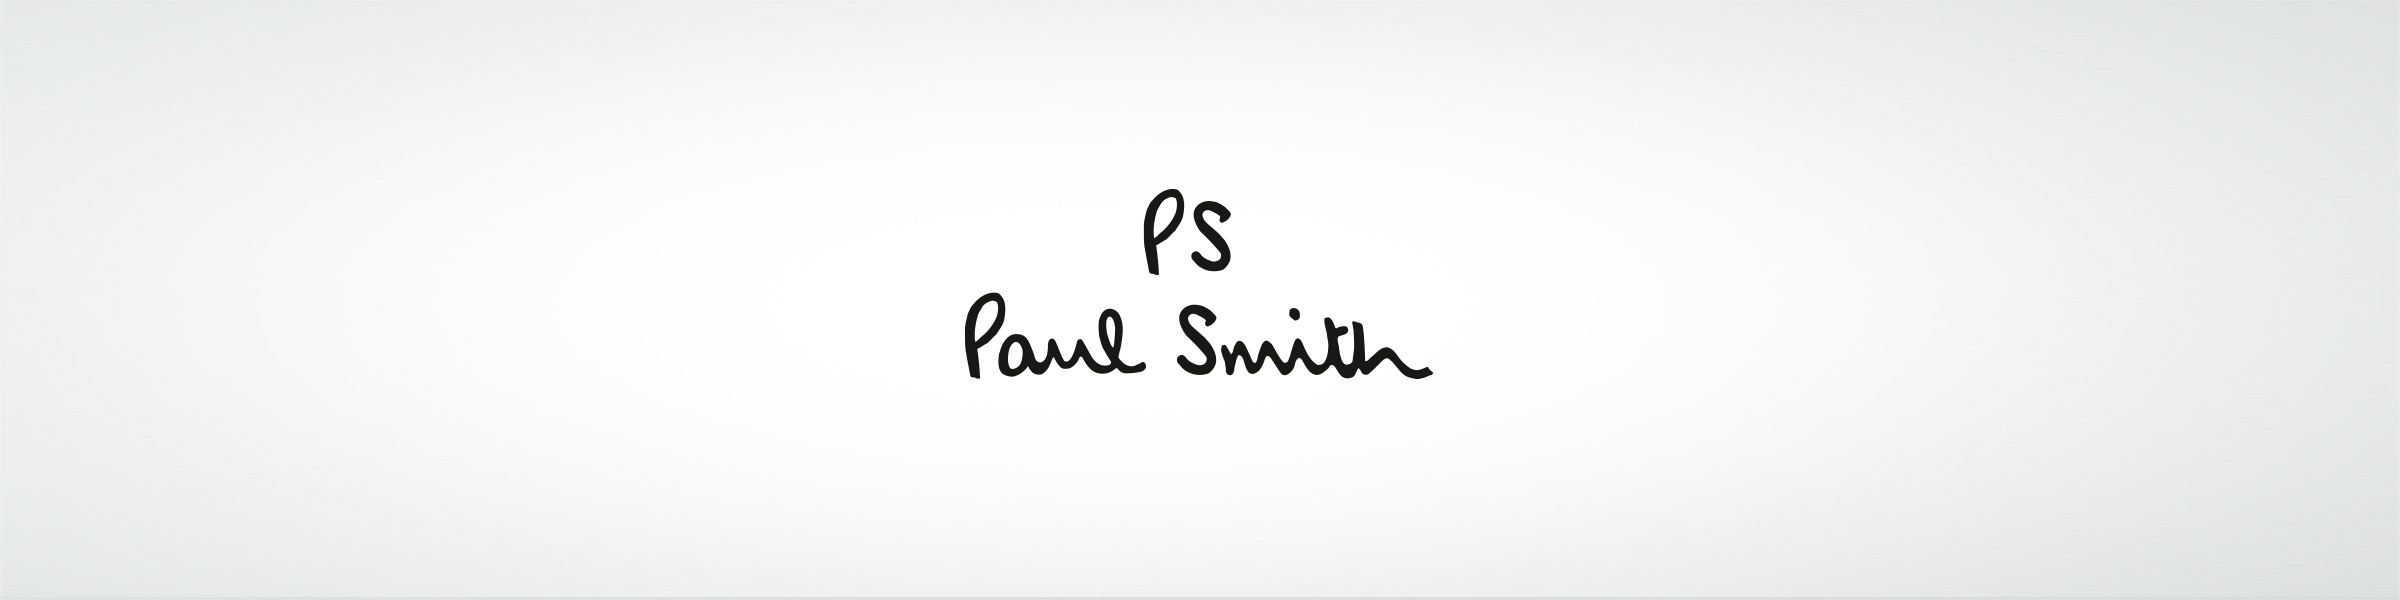 031524 PAUL SMITH PS